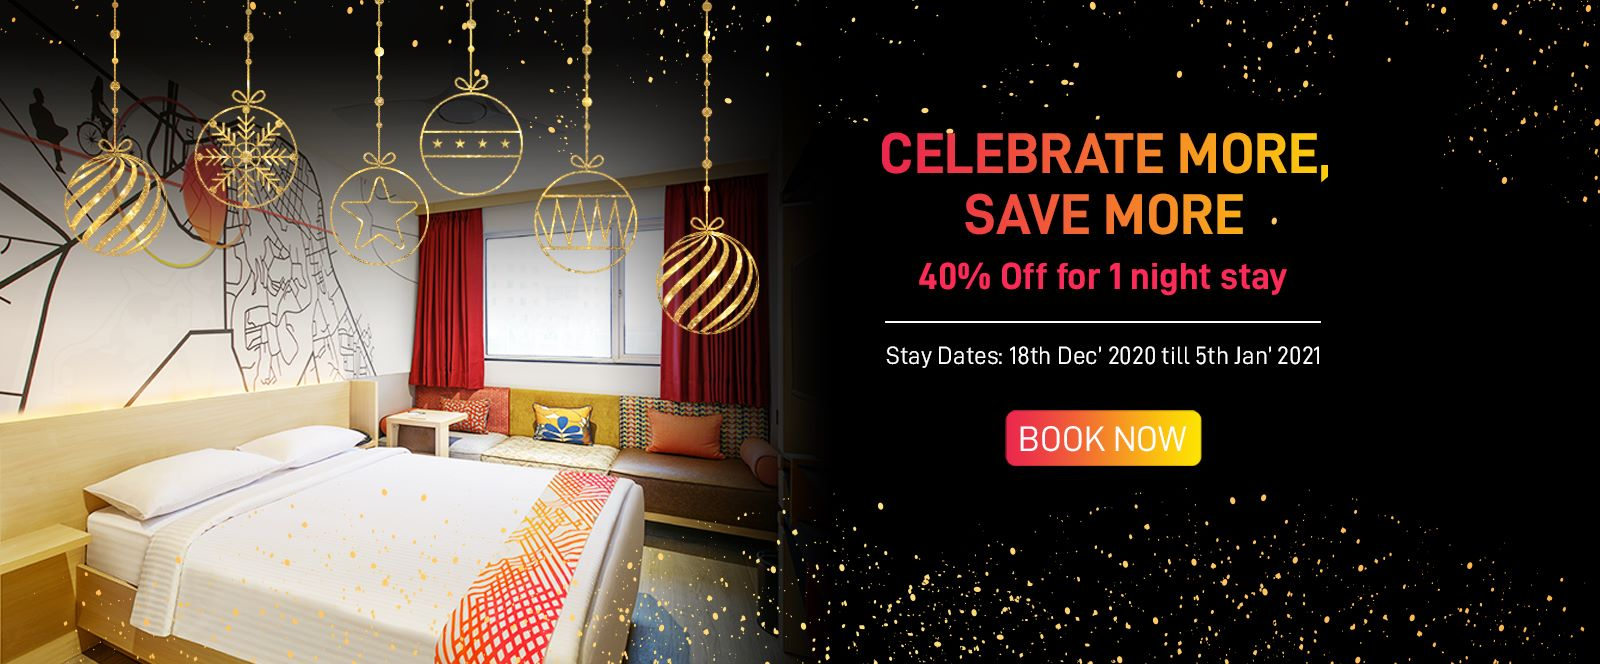 40% off on 1 night stay